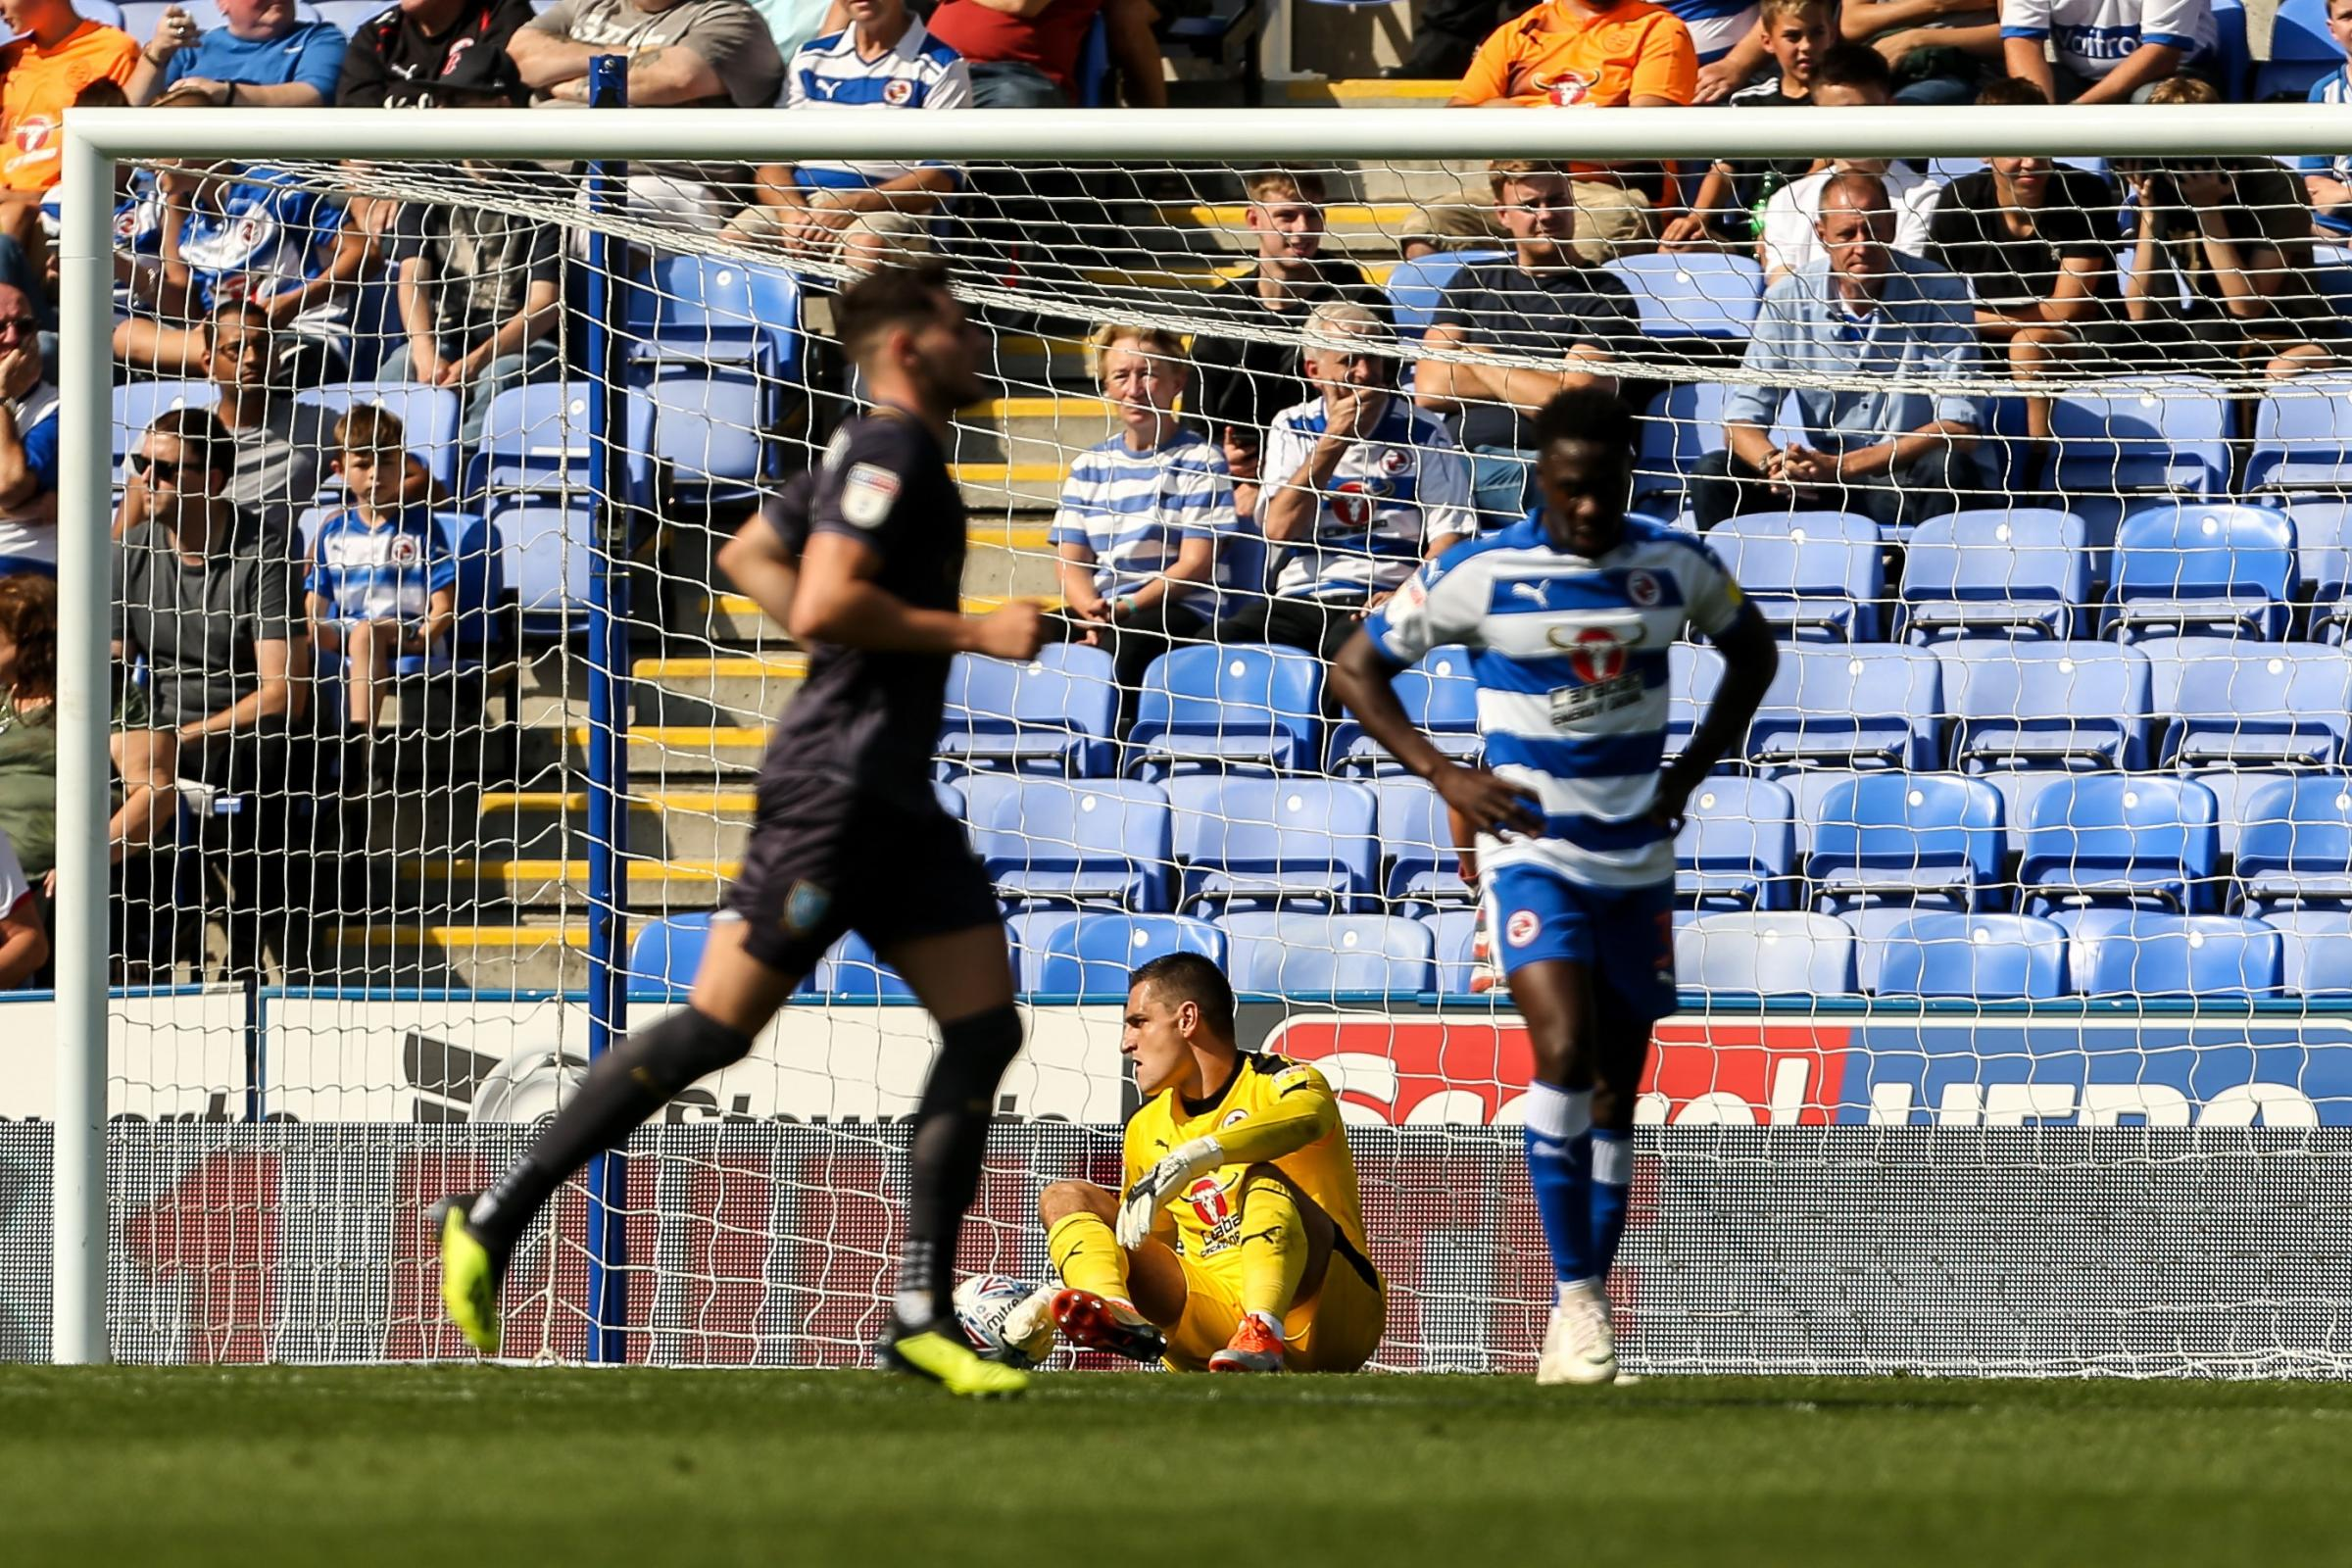 Lucas Joao fired Sheffield Wednesday into a 2-0 lead against Reading. Pictures: Jason Dawson